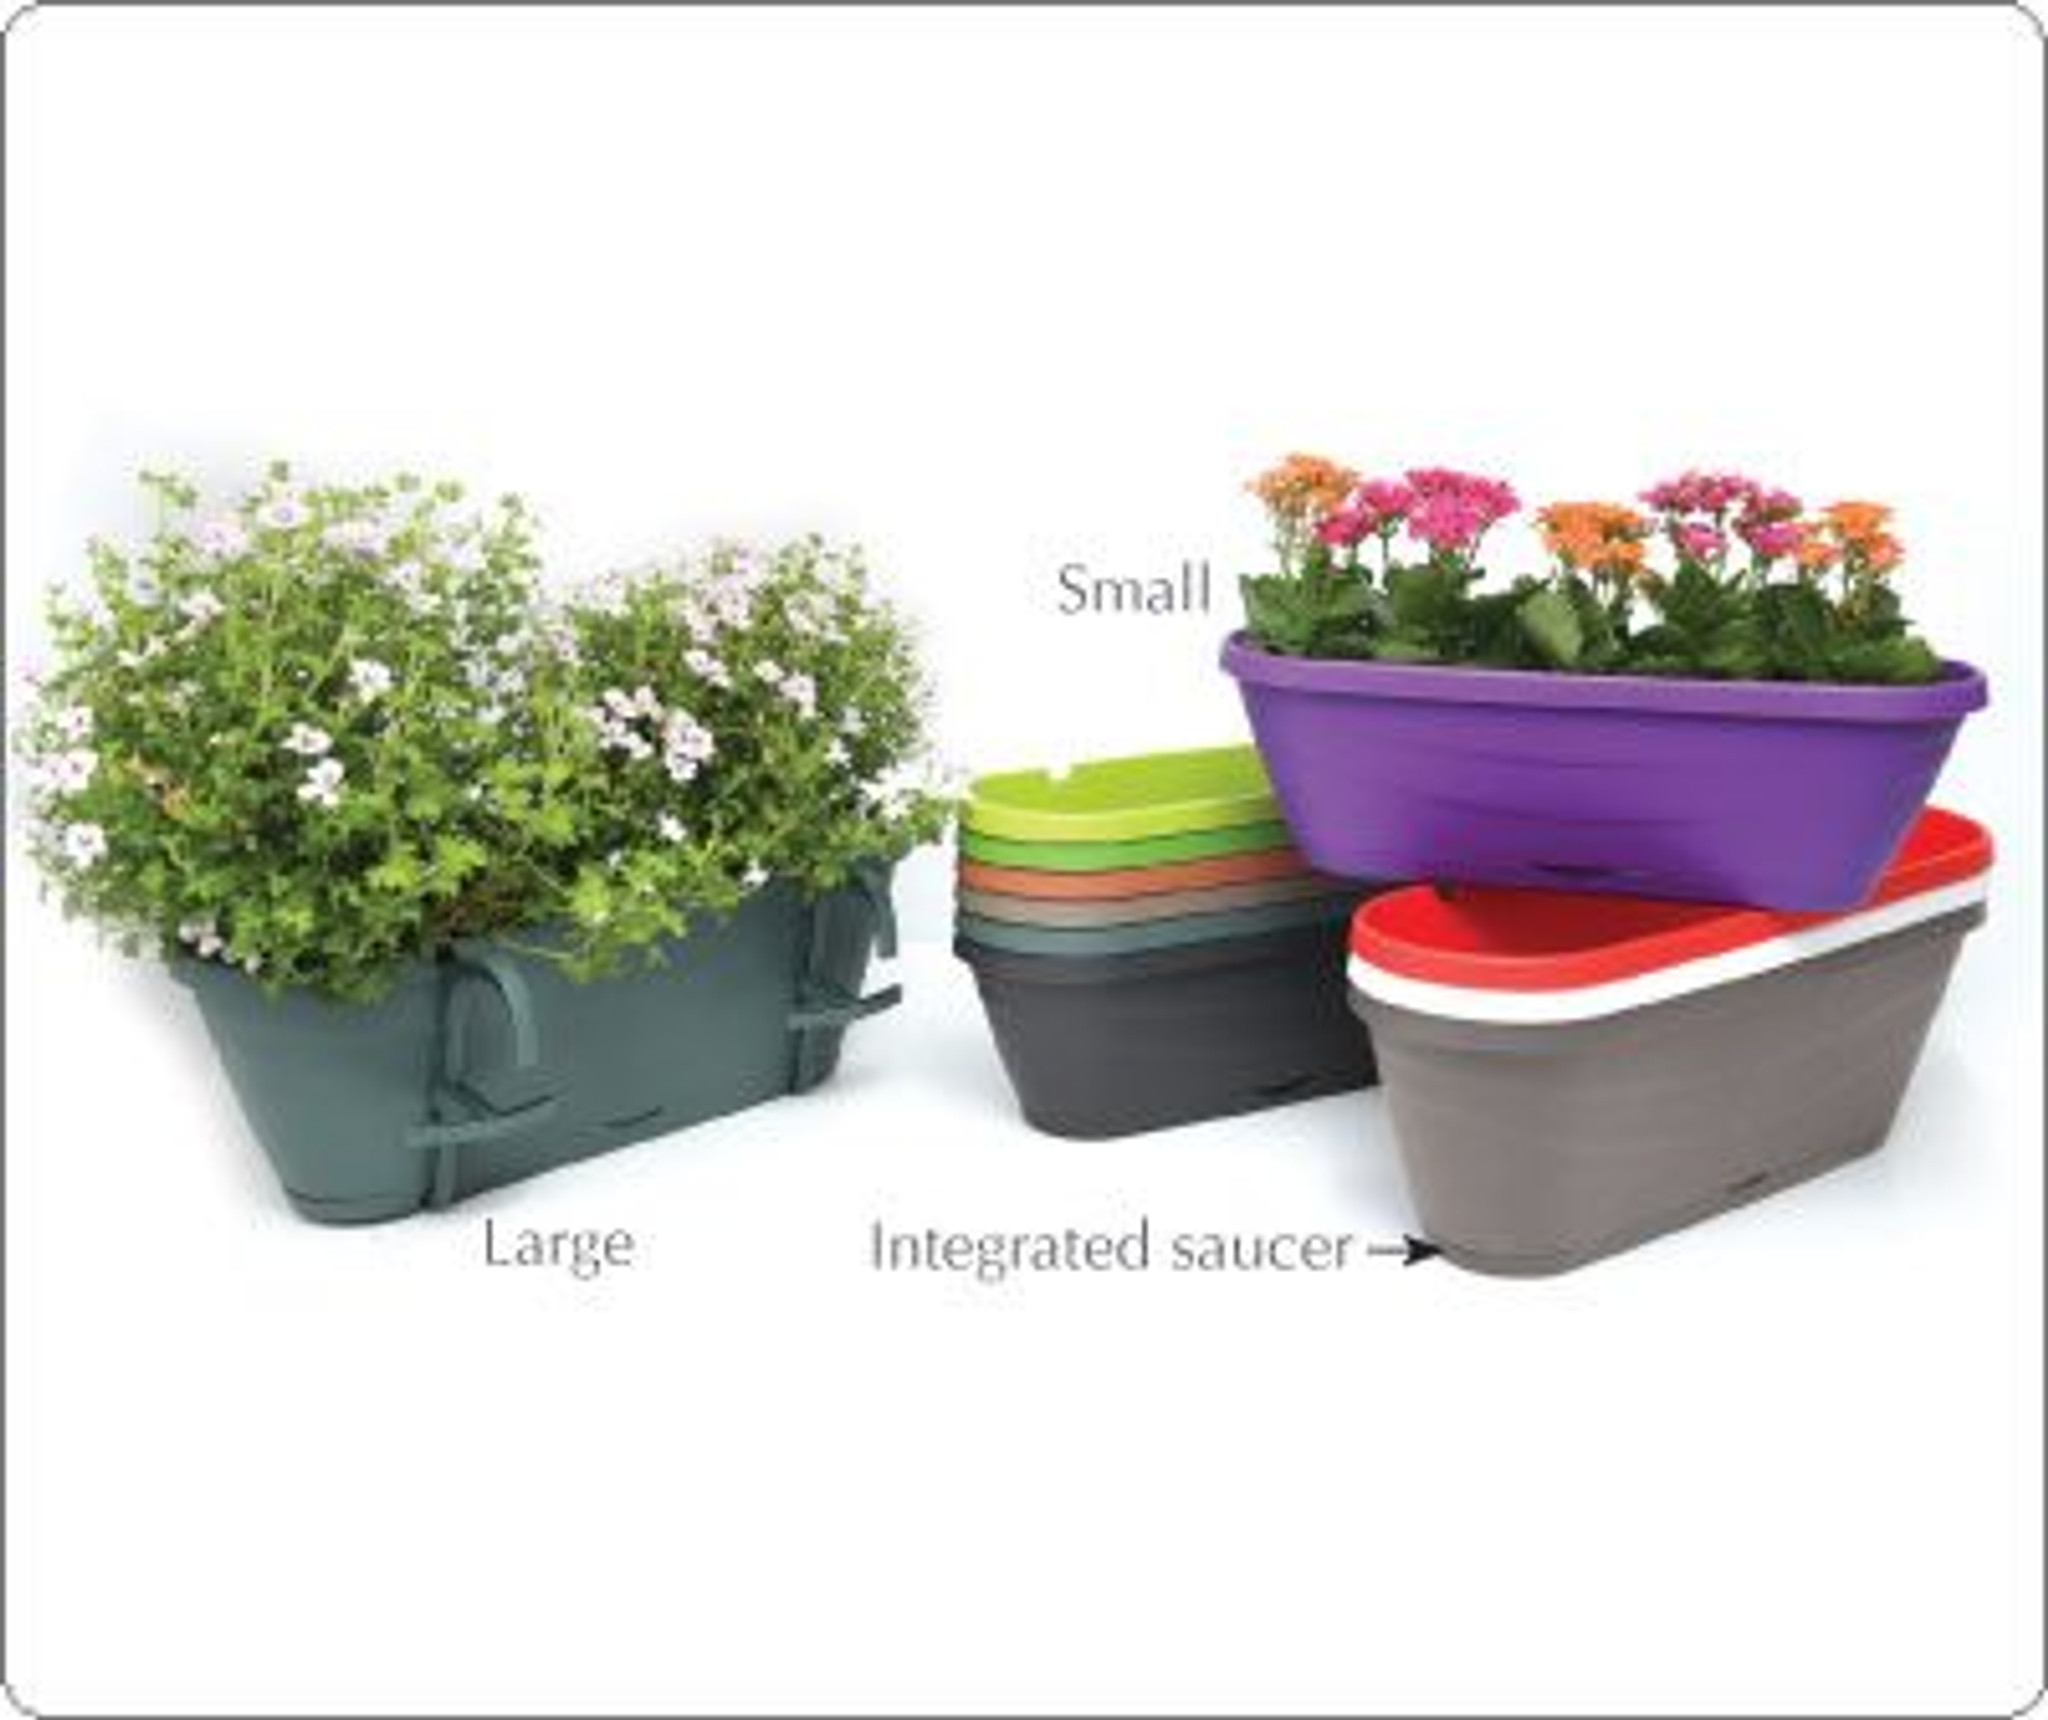 6x All-purpose Hanging Window Box